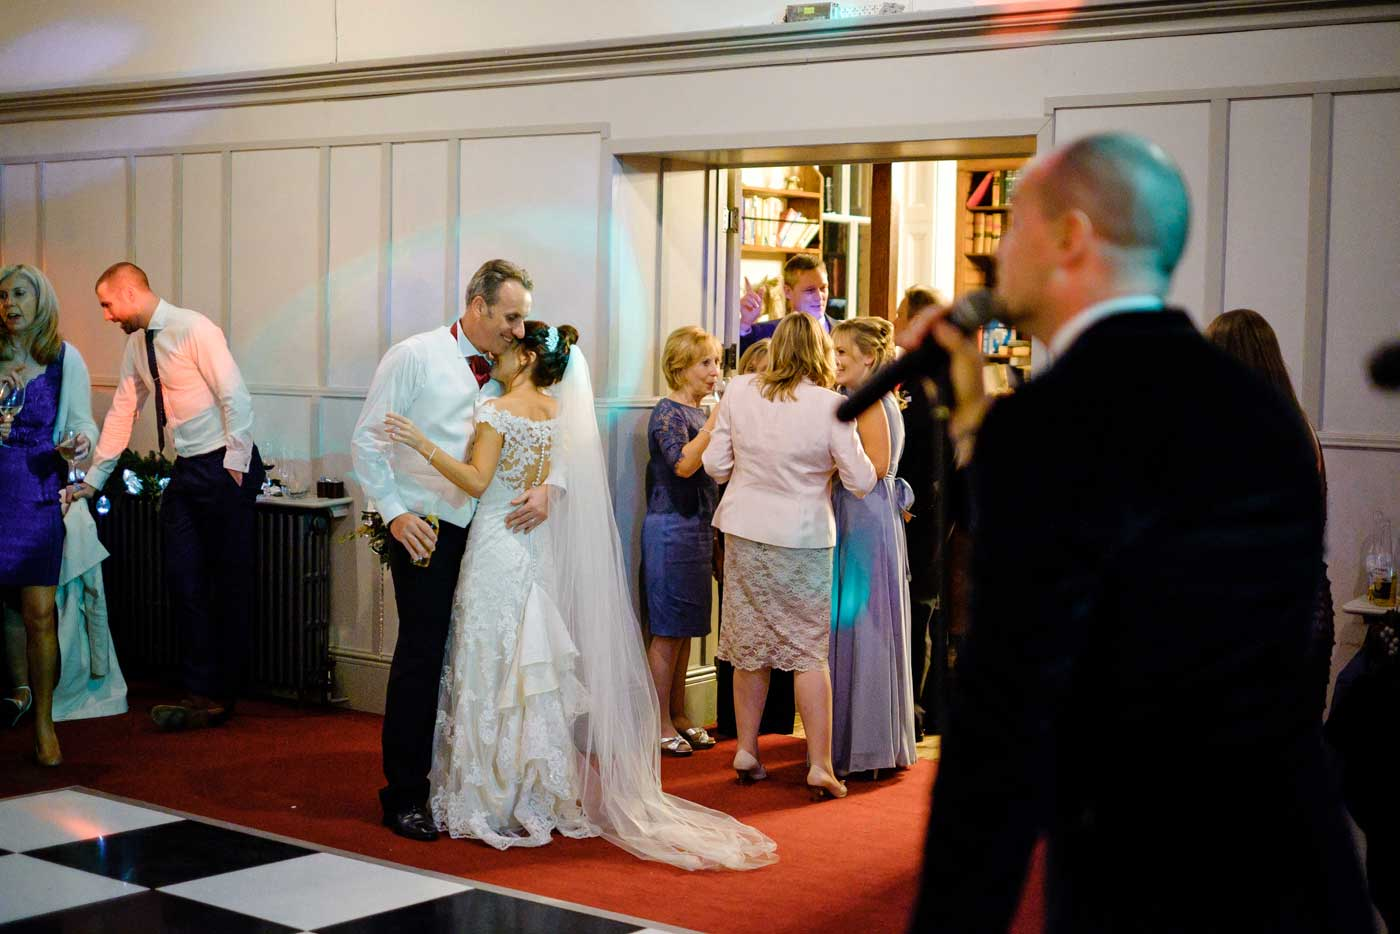 Bride and groom hugging during their eveing wedding reception by Stanbrook Abbey wedding photographer Clive Blair Photography